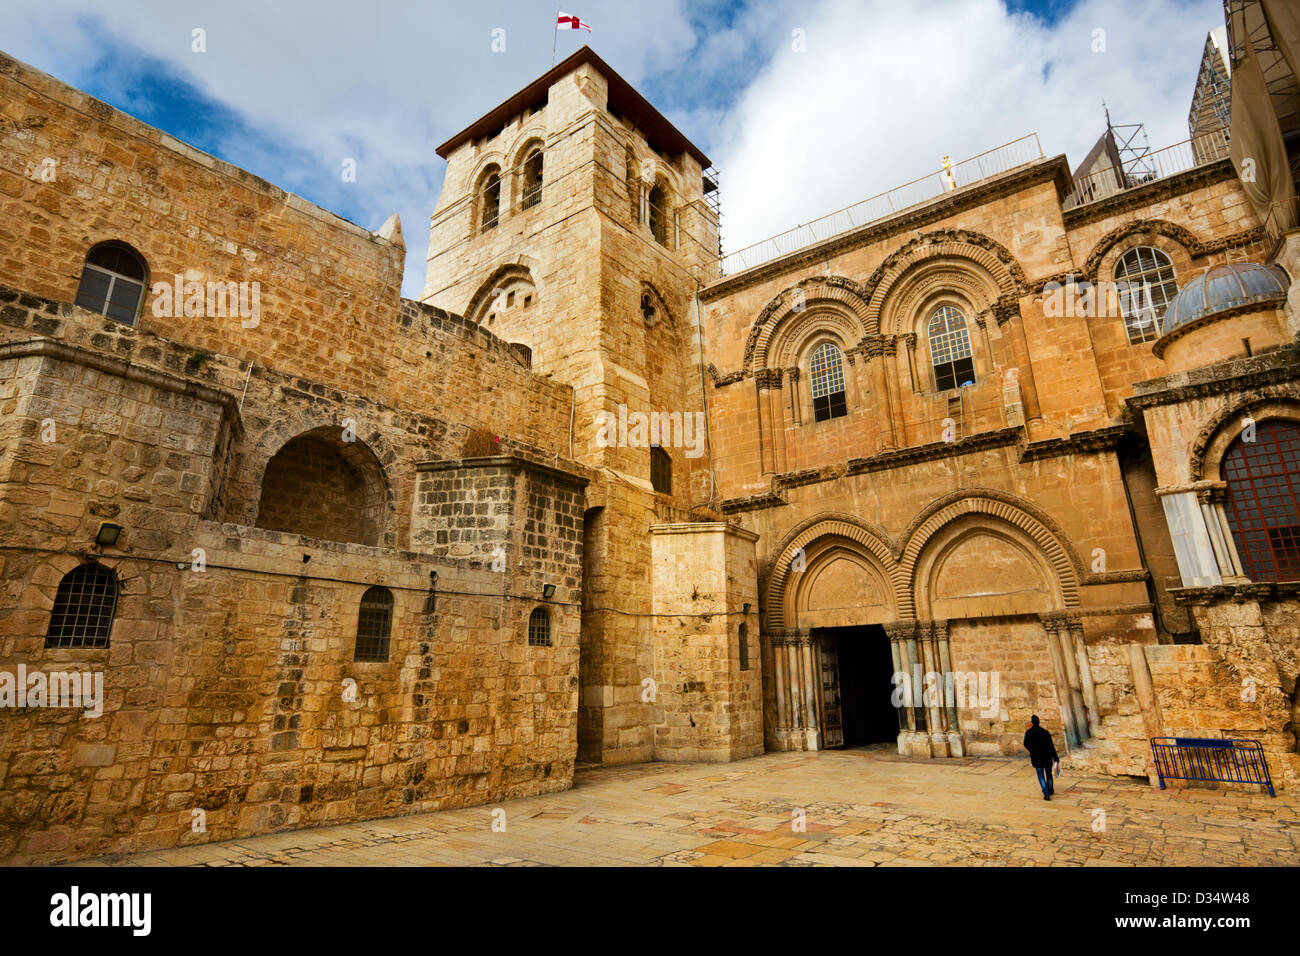 Vew on main entrance in at the Church of the Holy Sepulchre in Old City of Jerusalem - Stock Image